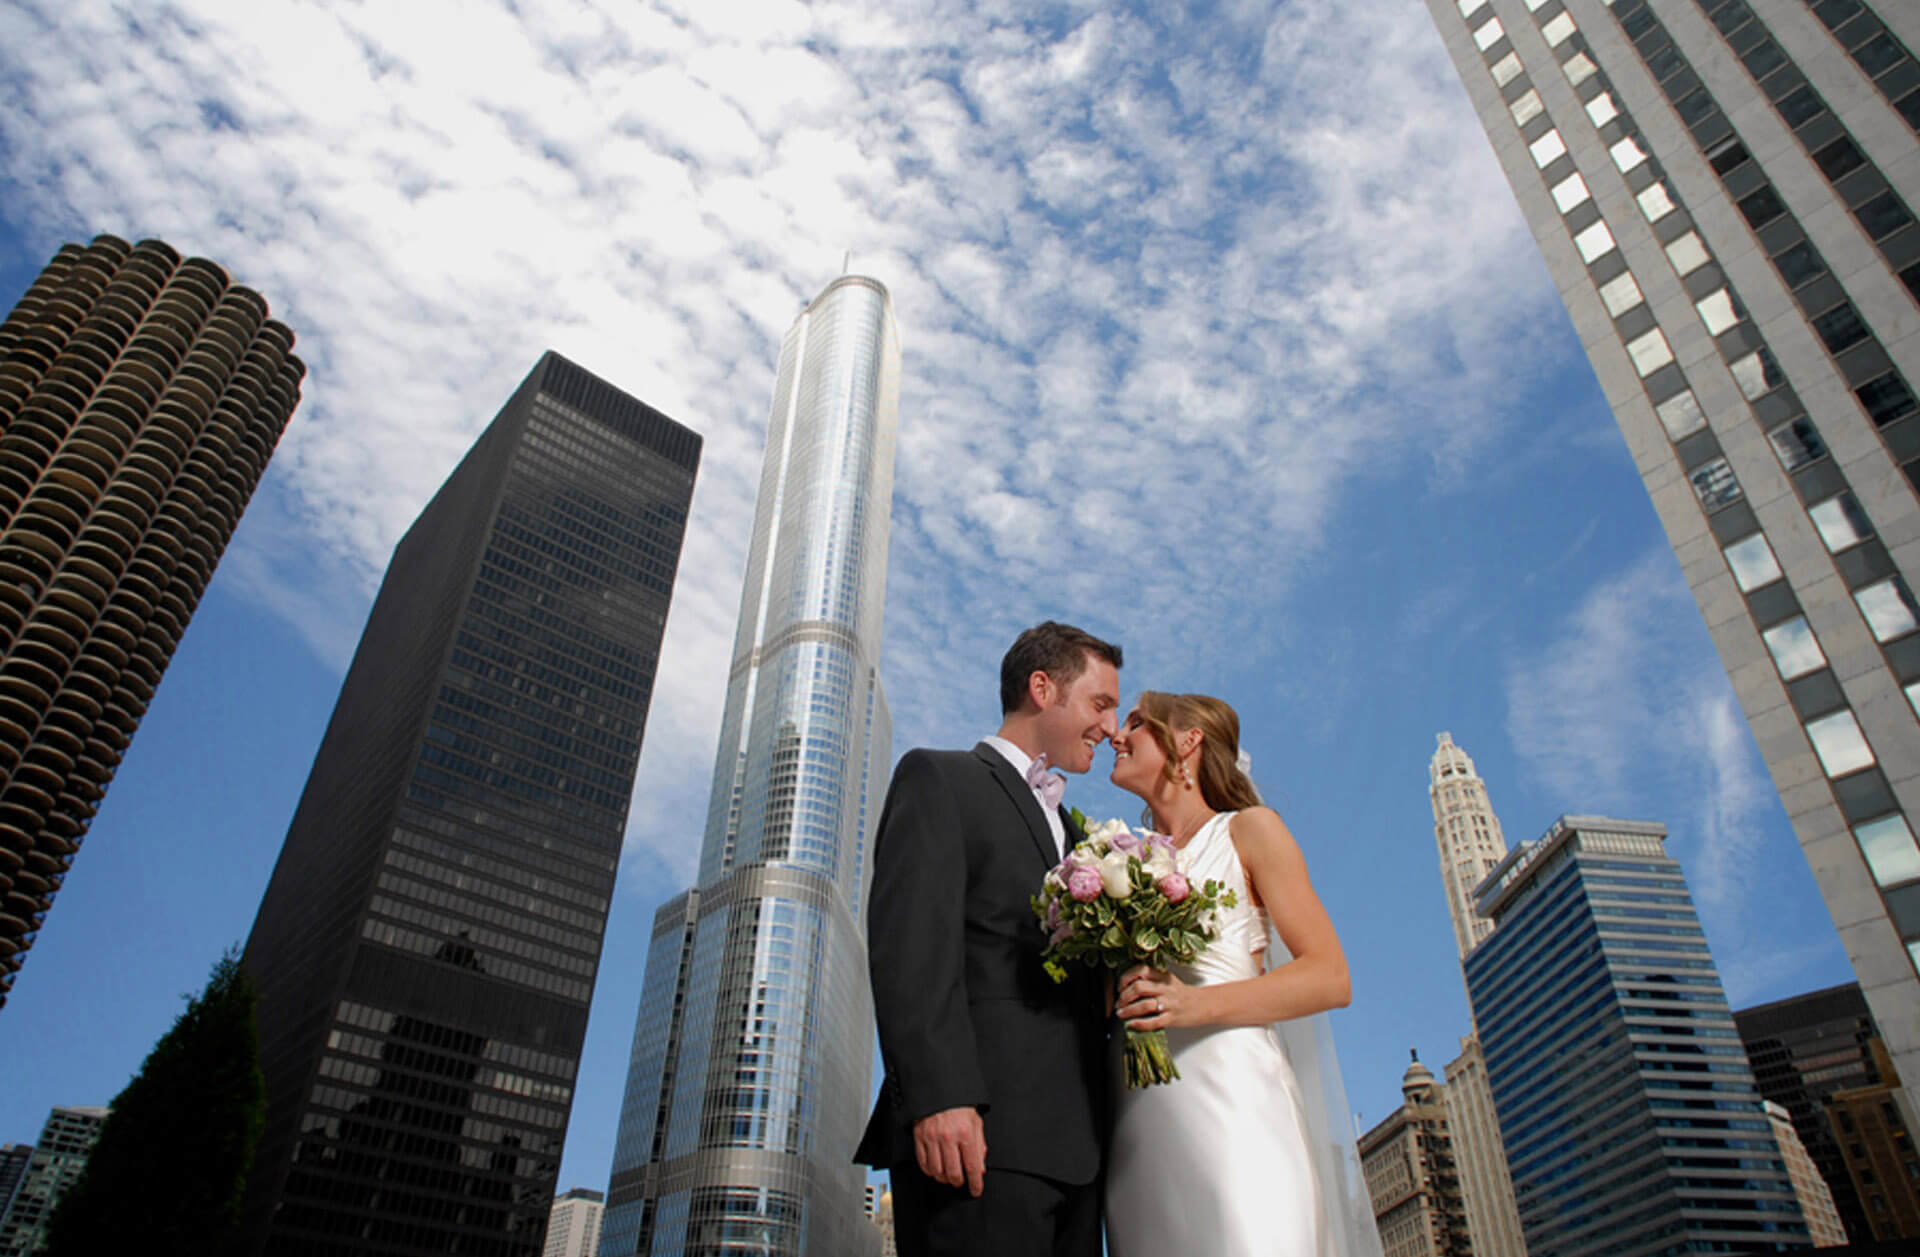 The bride and groom enjoy the city scape of Chicago for this destination wedding.